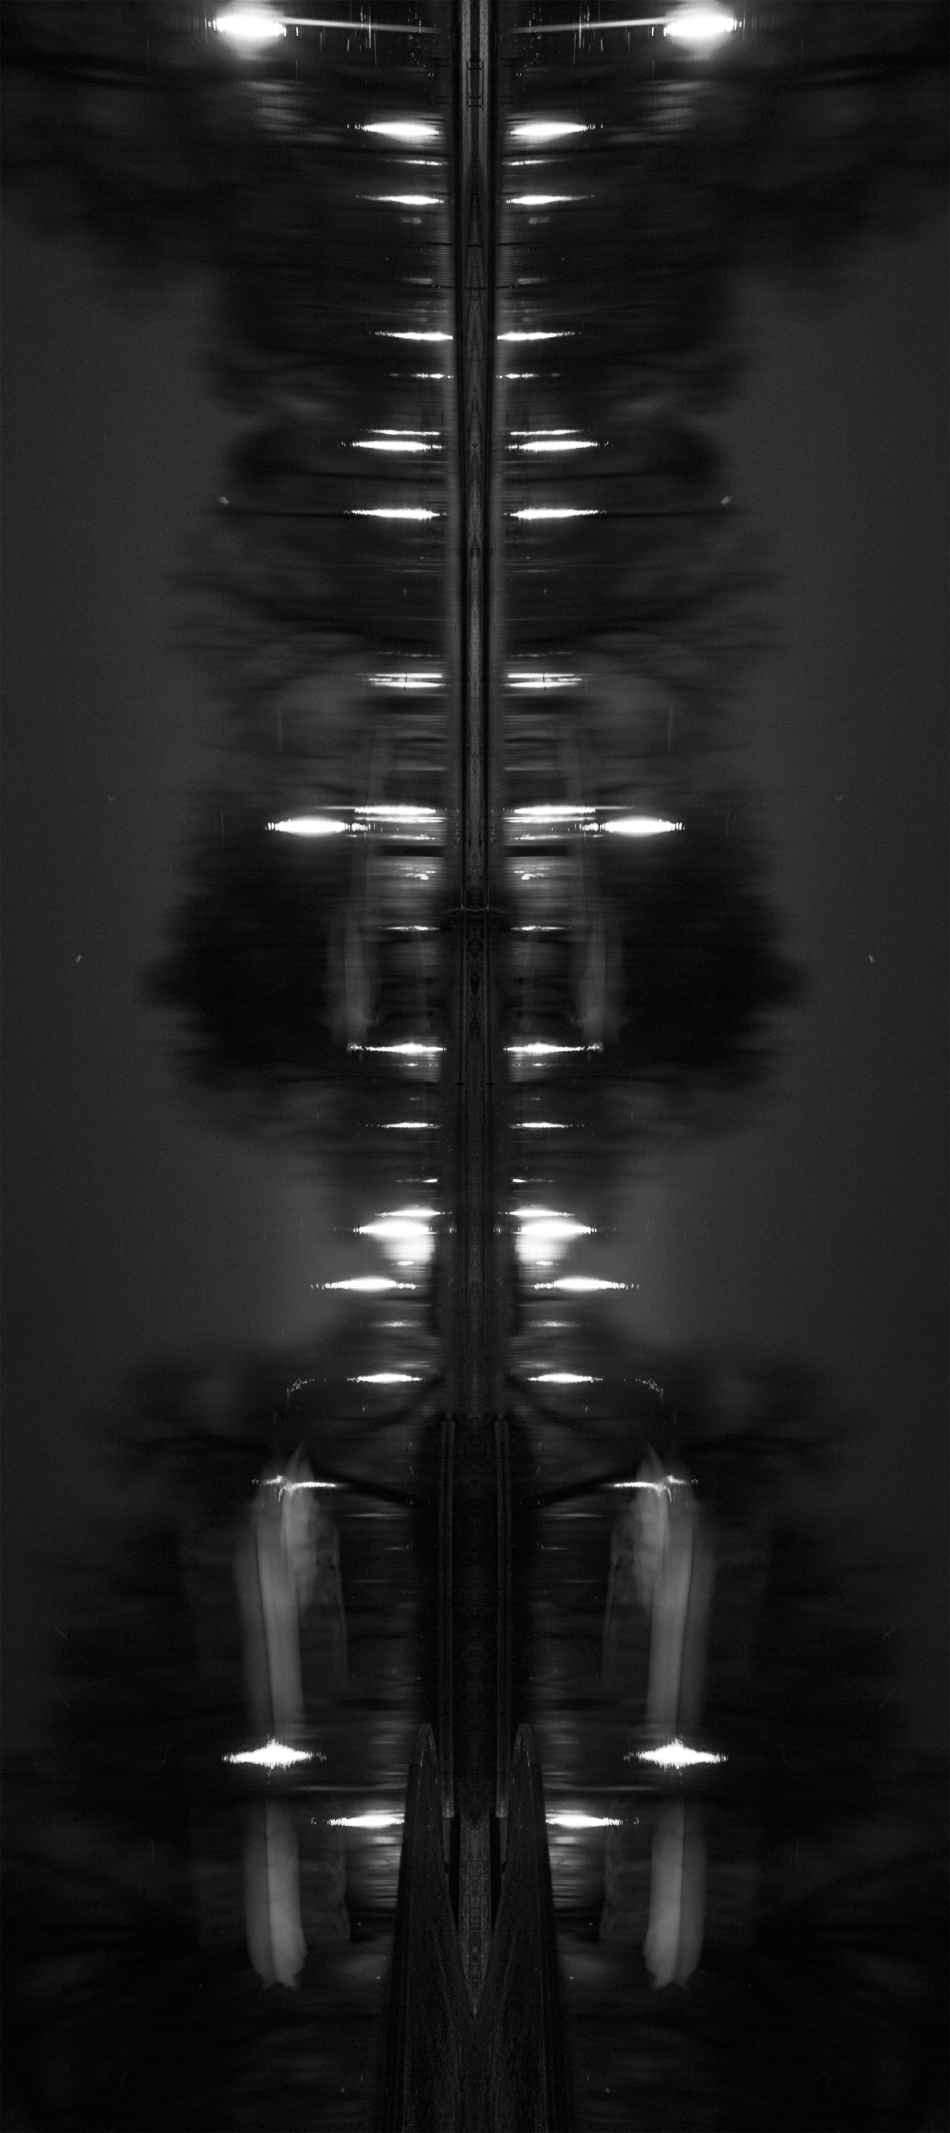 An abstract black and white photograph that is the mirror image of swans on a pond at night. Photo by Braden Piper bgpiperphotography.com